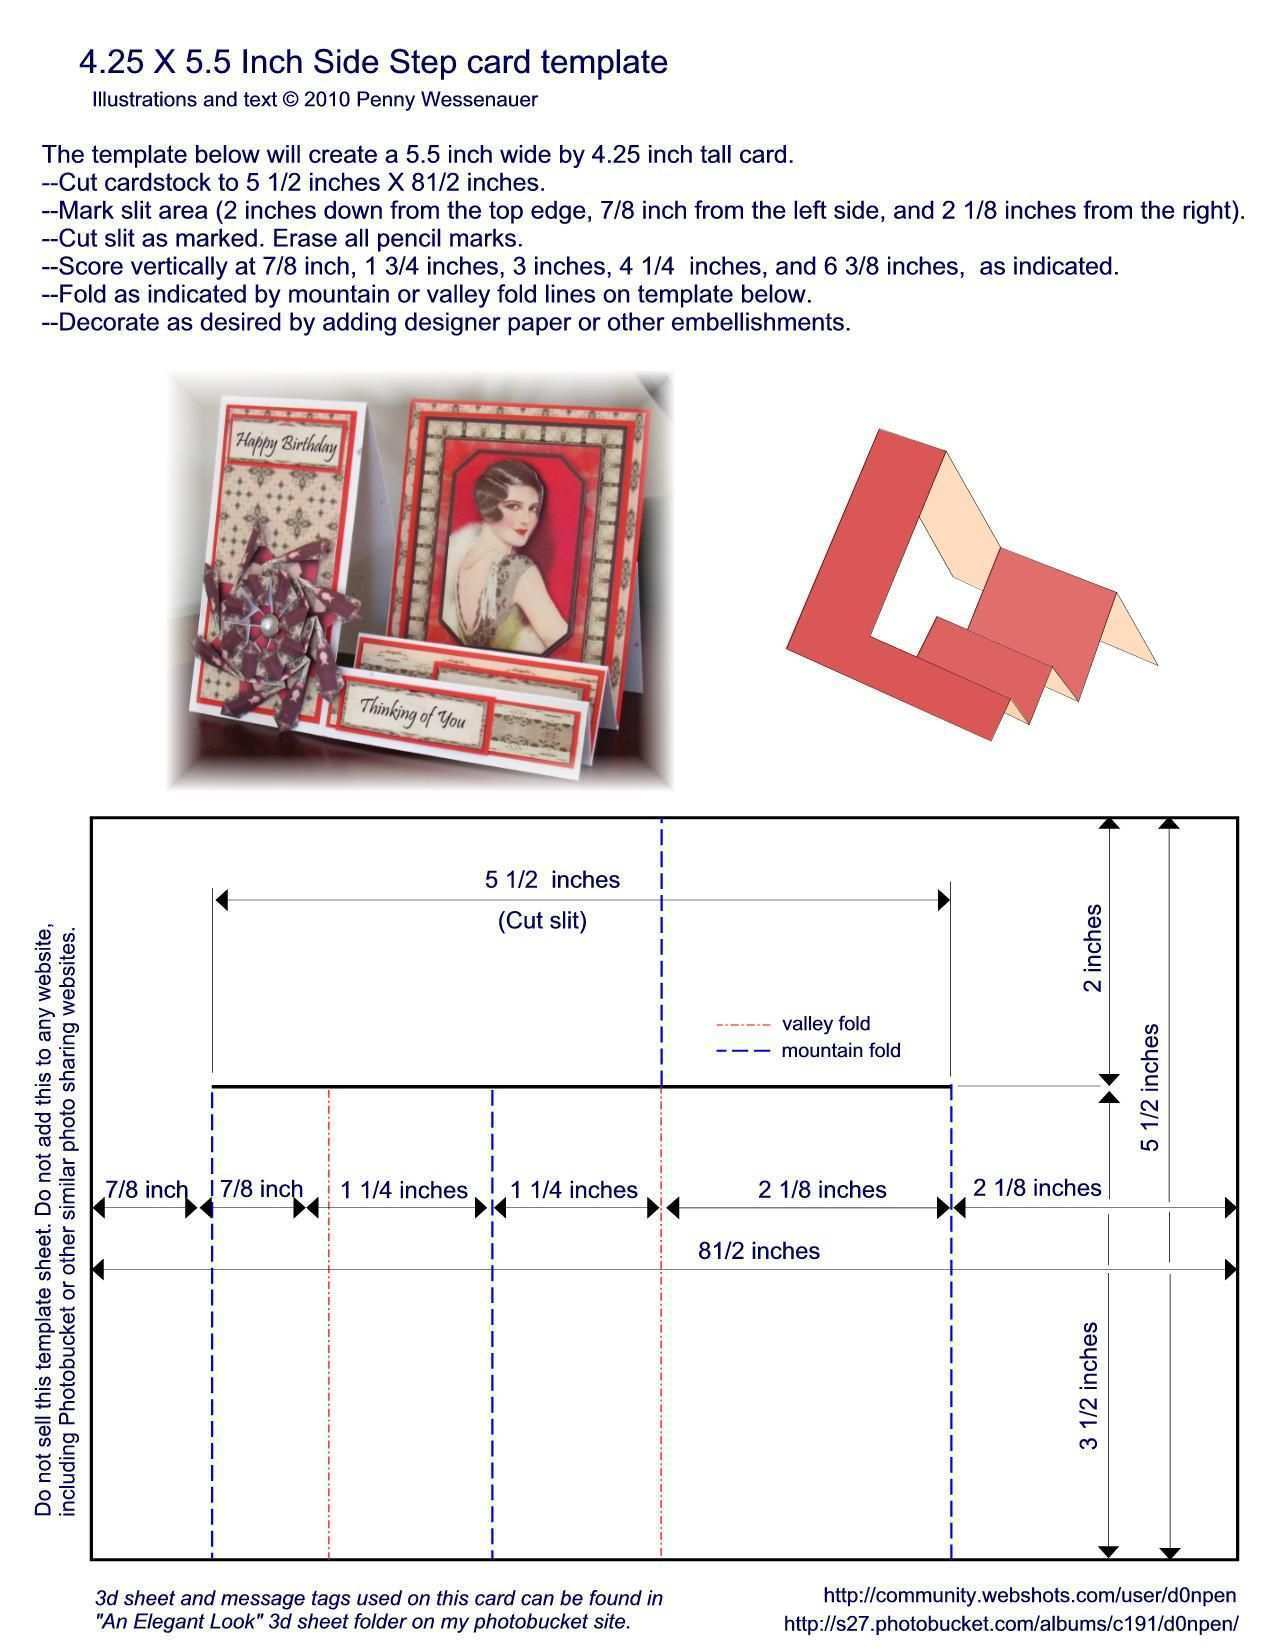 54 Best 4 25 X 5 5 Card Template Now for 4 25 X 5 5 Card Template